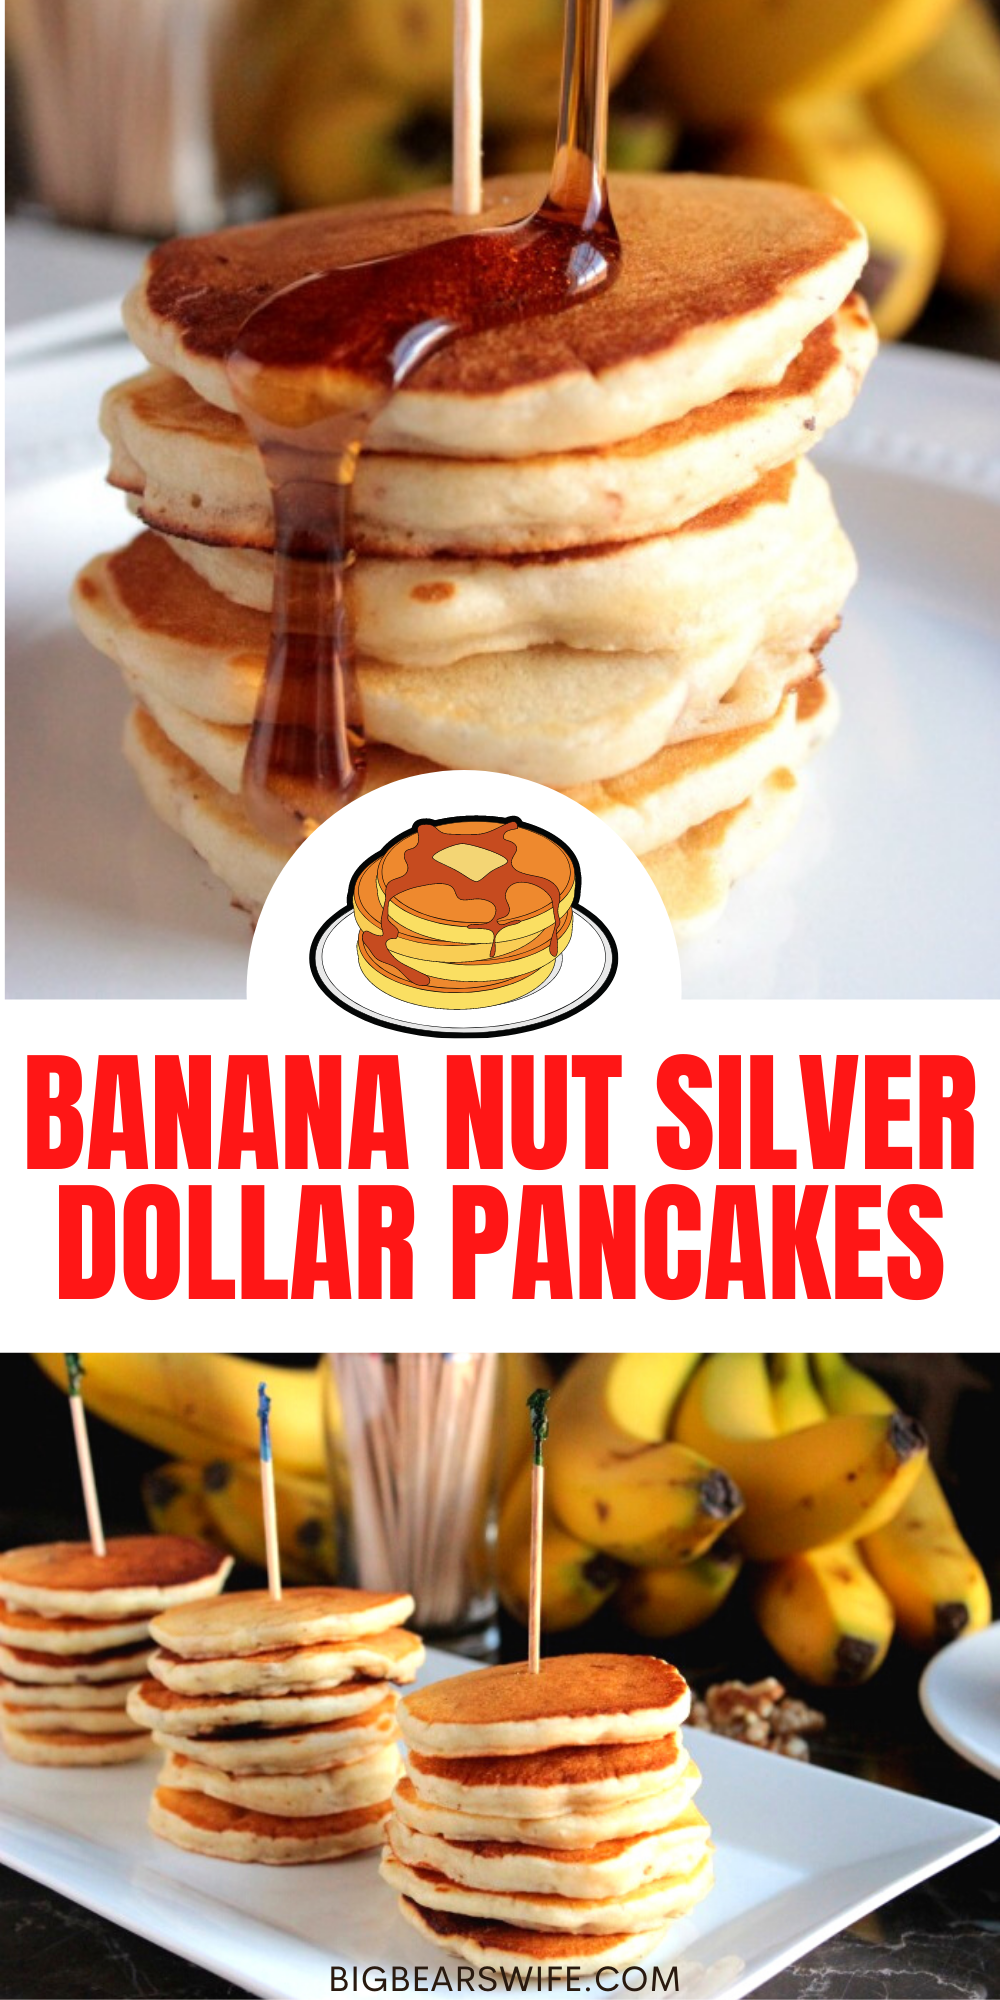 BANANA NUT SILVER DOLLAR PANCAKES - Delicious and wonderful banana pancakes that can be cooked regular size or mini size! They're perfect for breakfast!  via @bigbearswife